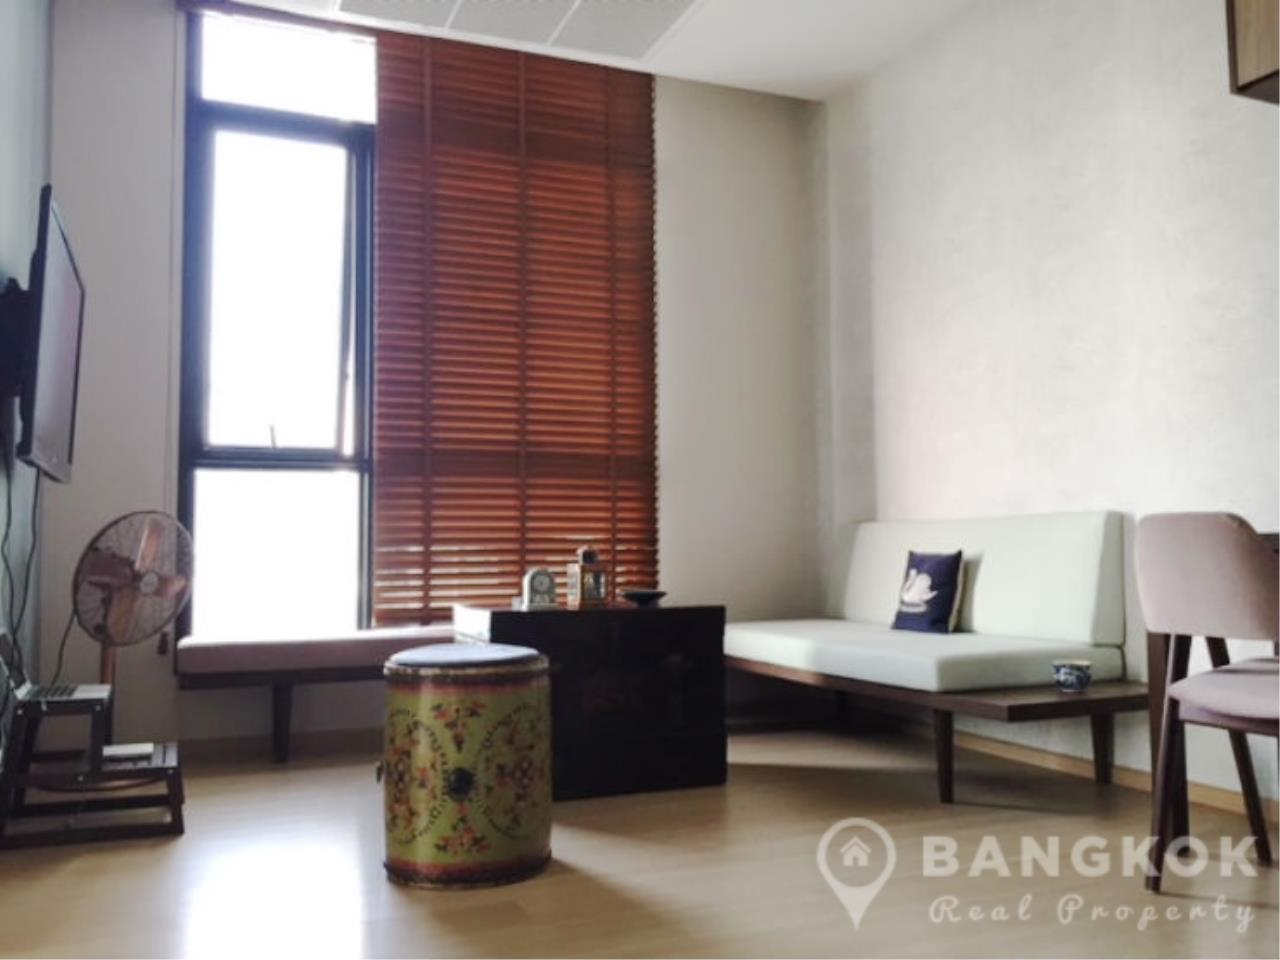 Bangkok Real Property Agency's The Capital Ekamai – Thonglor | Modern 1 Bed with Study (1+1) 1 Bath  1